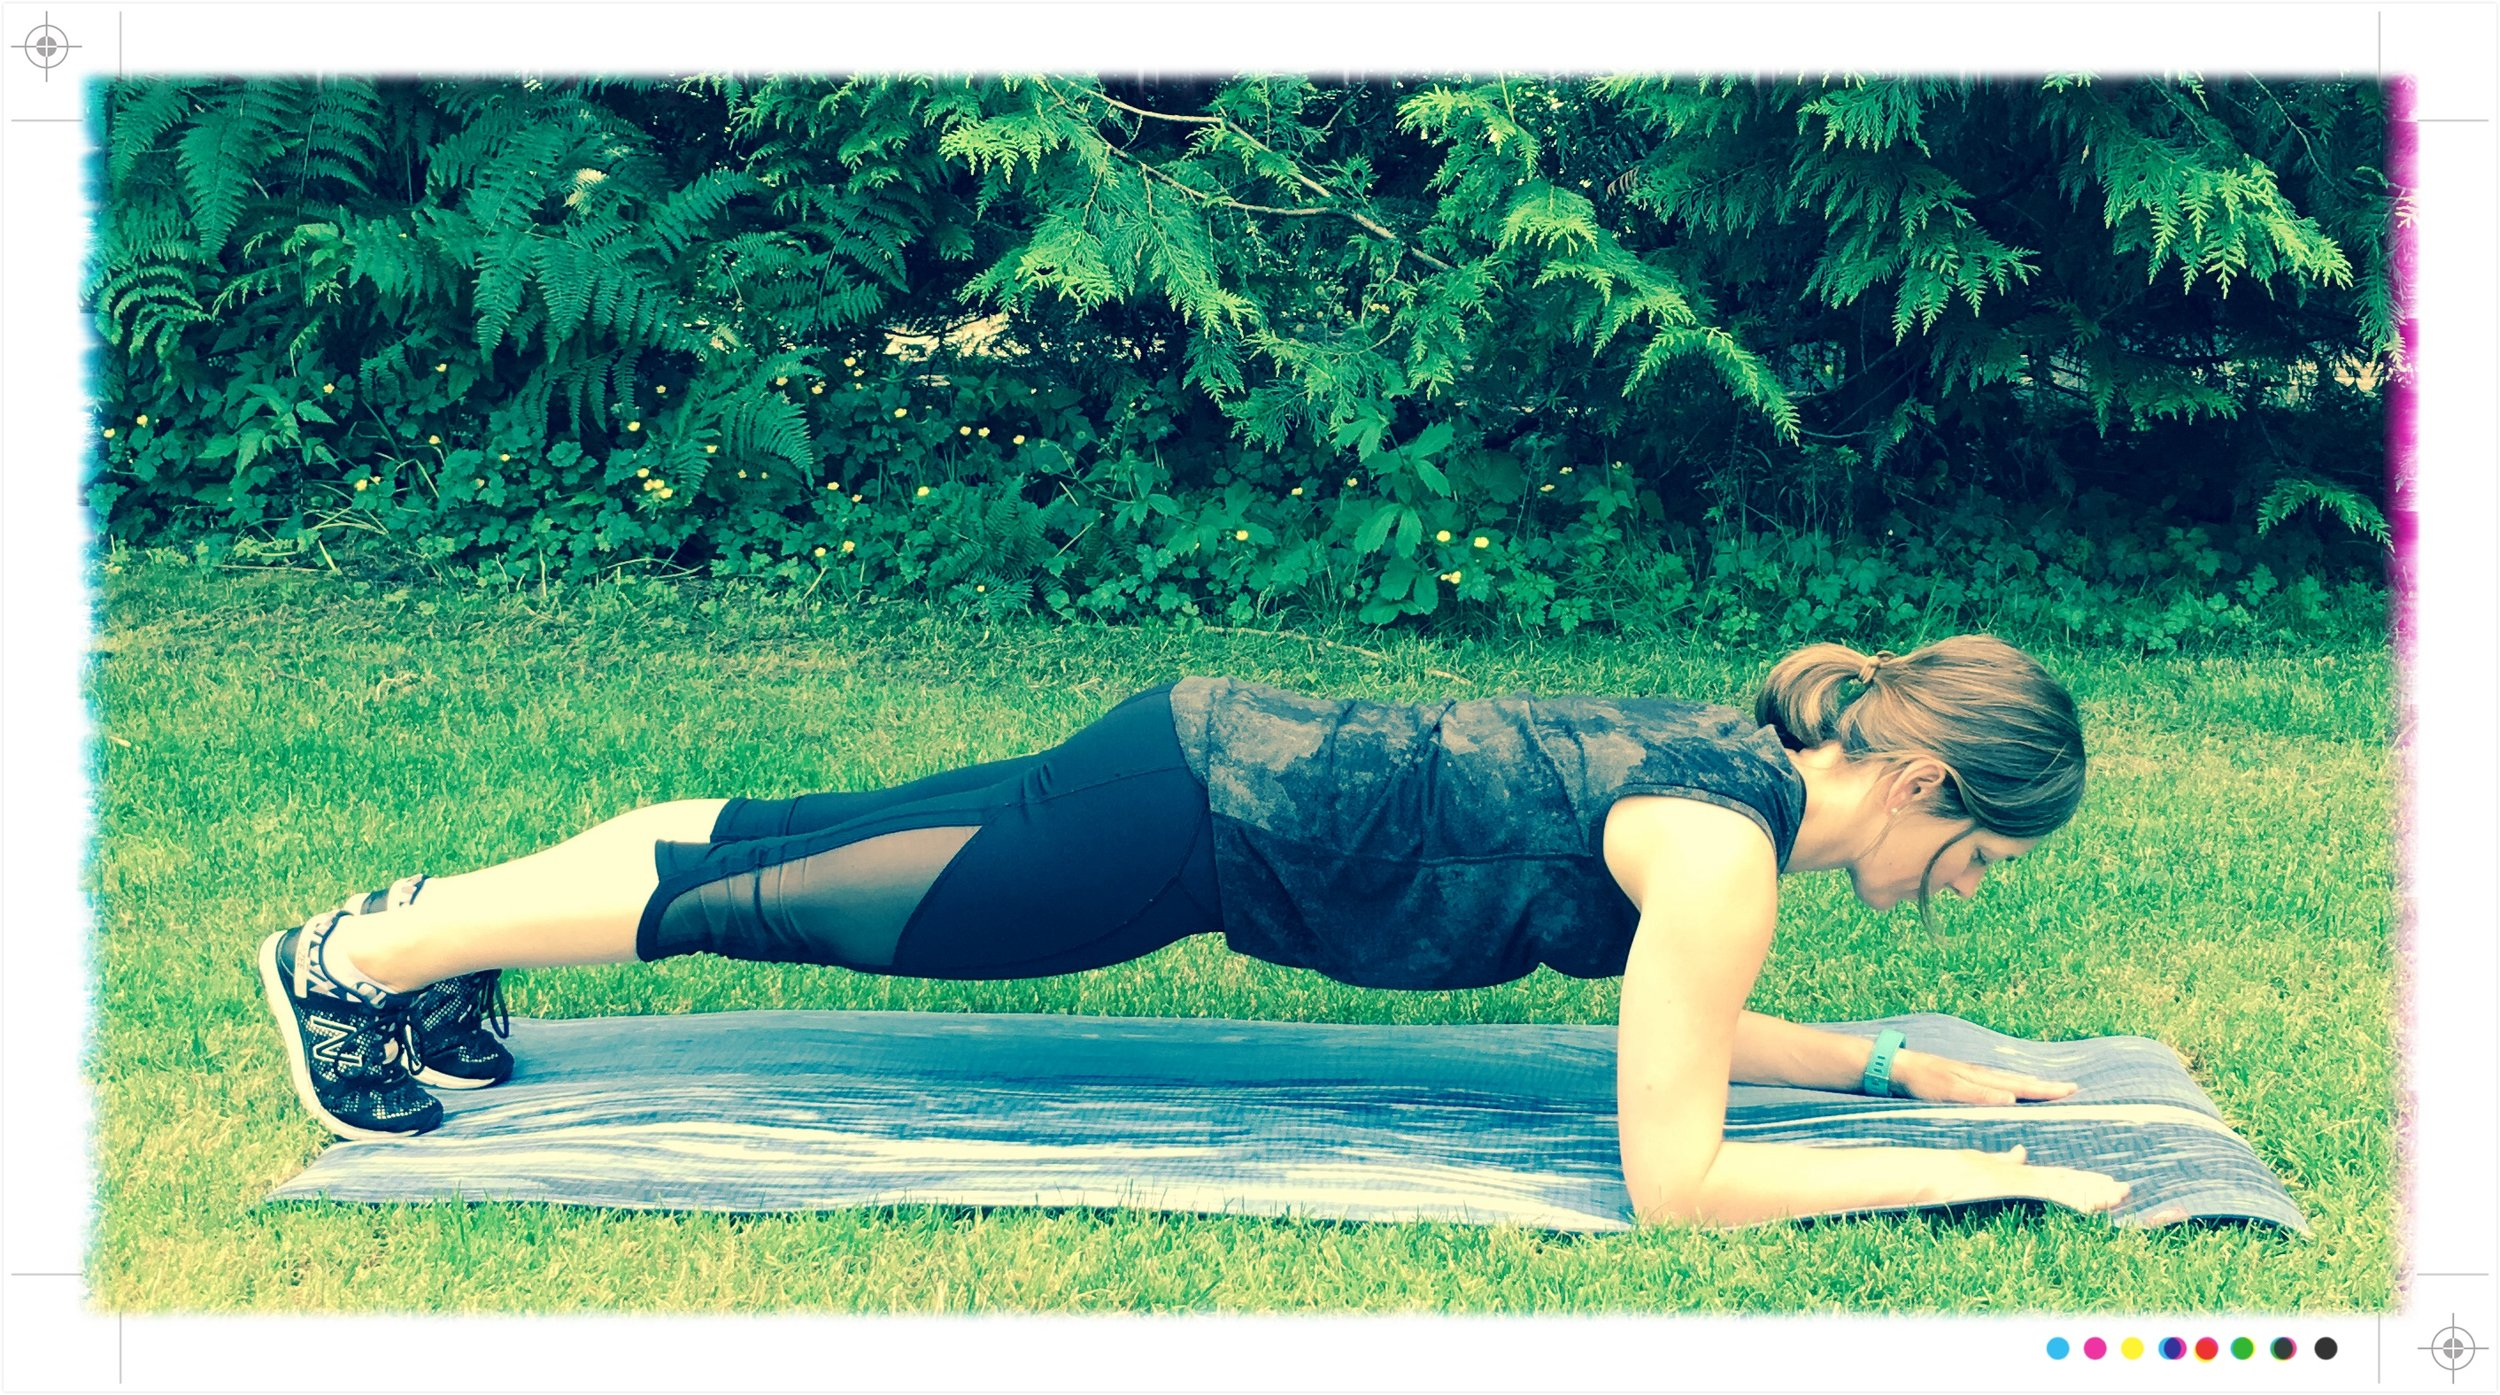 Plank. Because it's a total body exercise that when done correctly, gets it ALL warmed up.